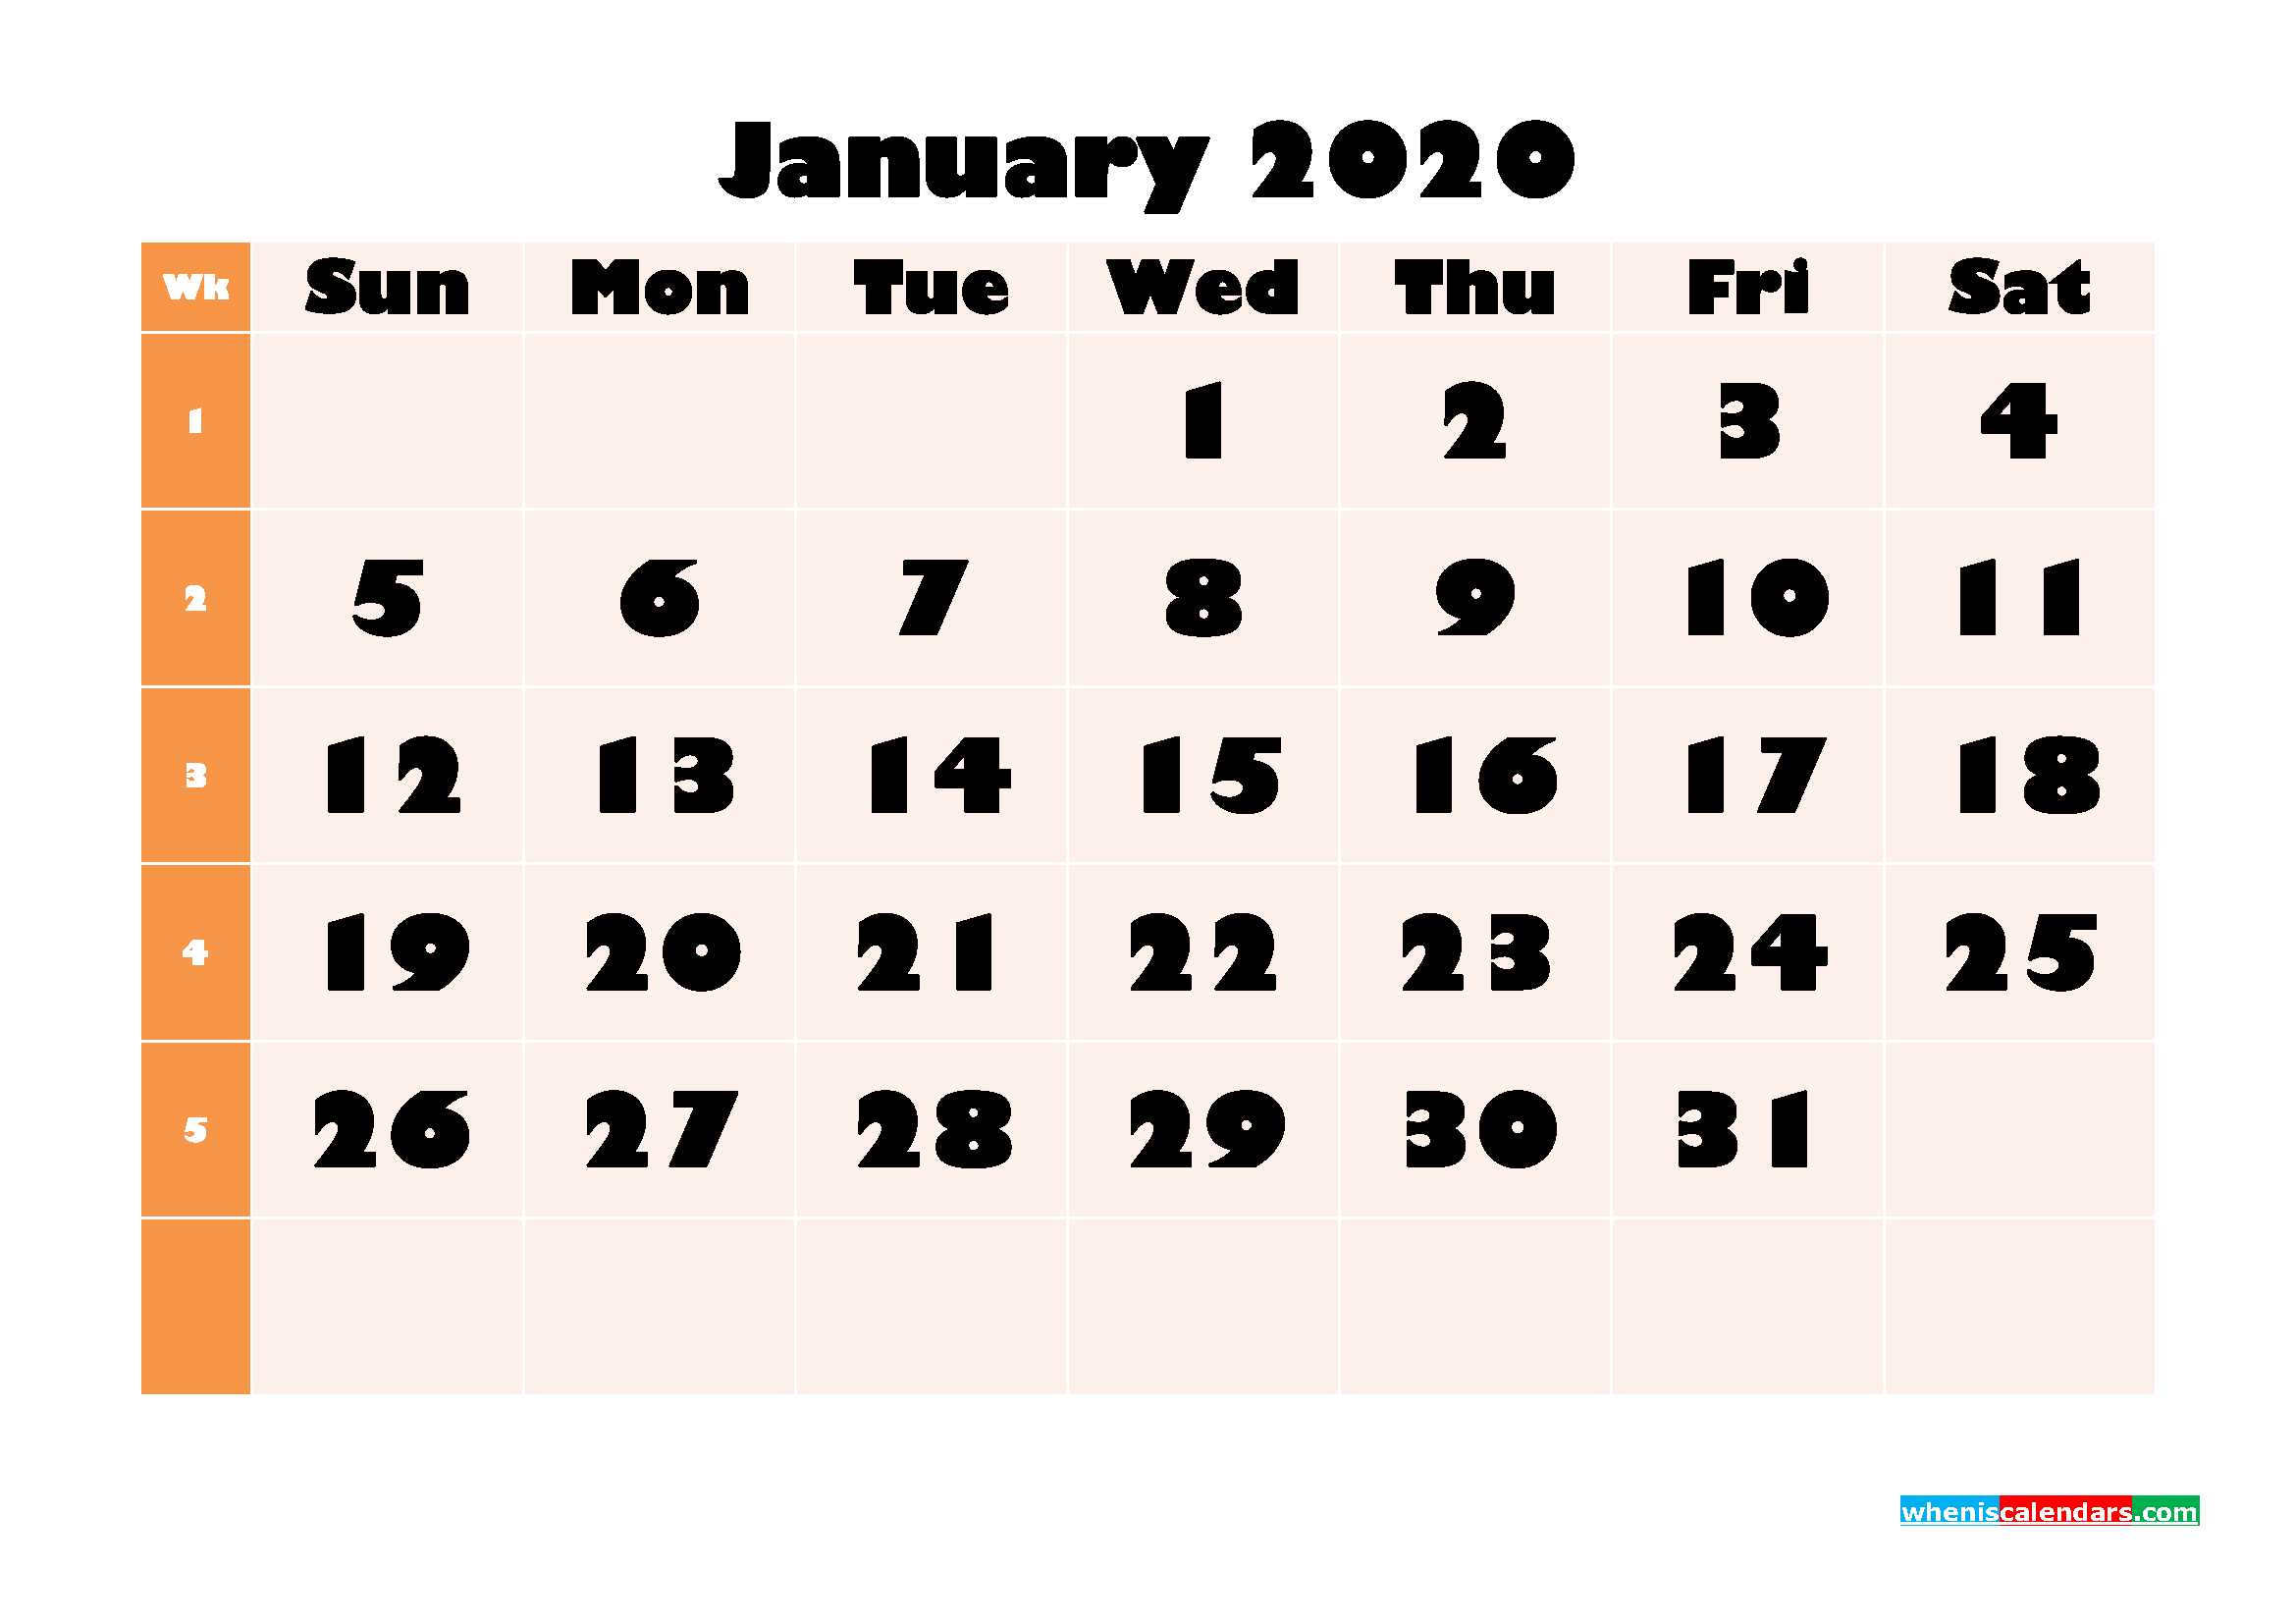 Monthly Printable Calendar 2020 January with Week Numbers